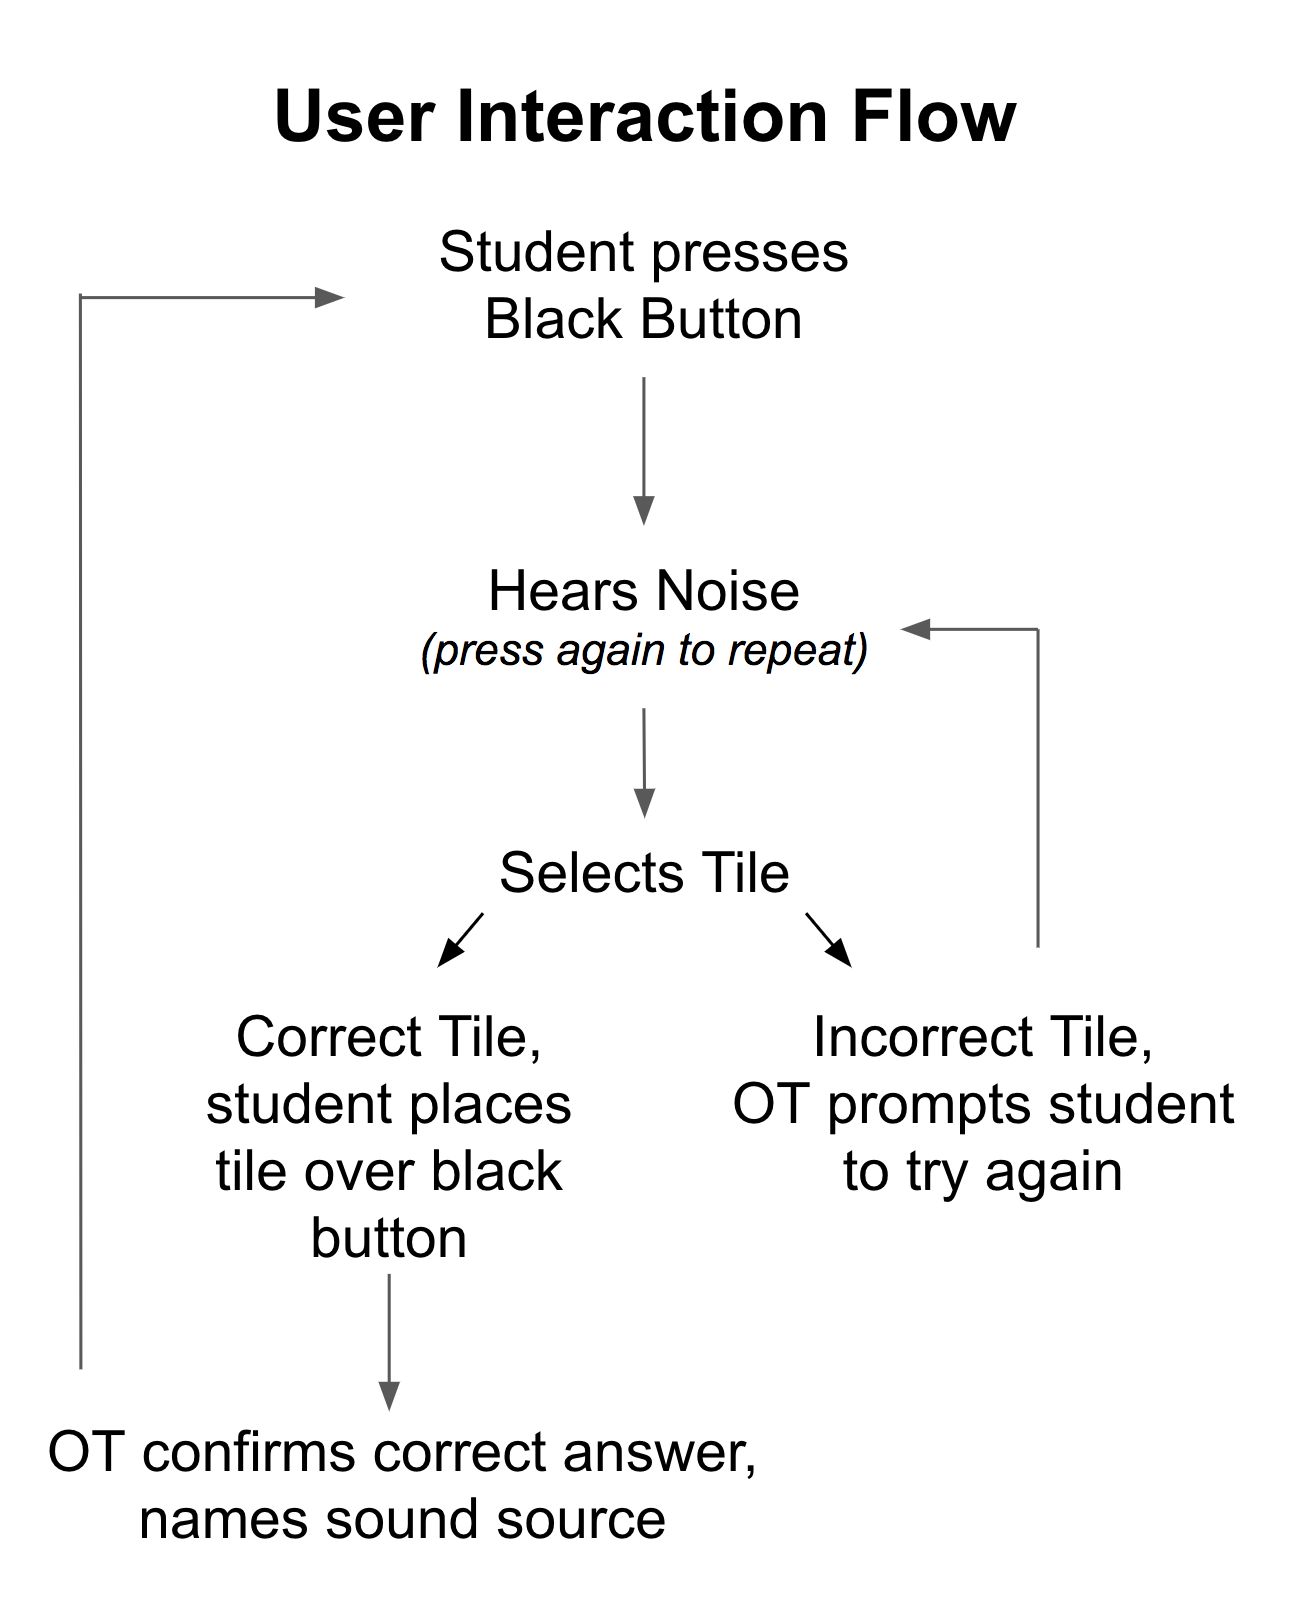 User Interaction Flow. Student presses black button -> hears noise -> selects a tile with corresponding image - > if correct, student places tile over black button -> if incorrect, occupational therapist prompts student to try again.